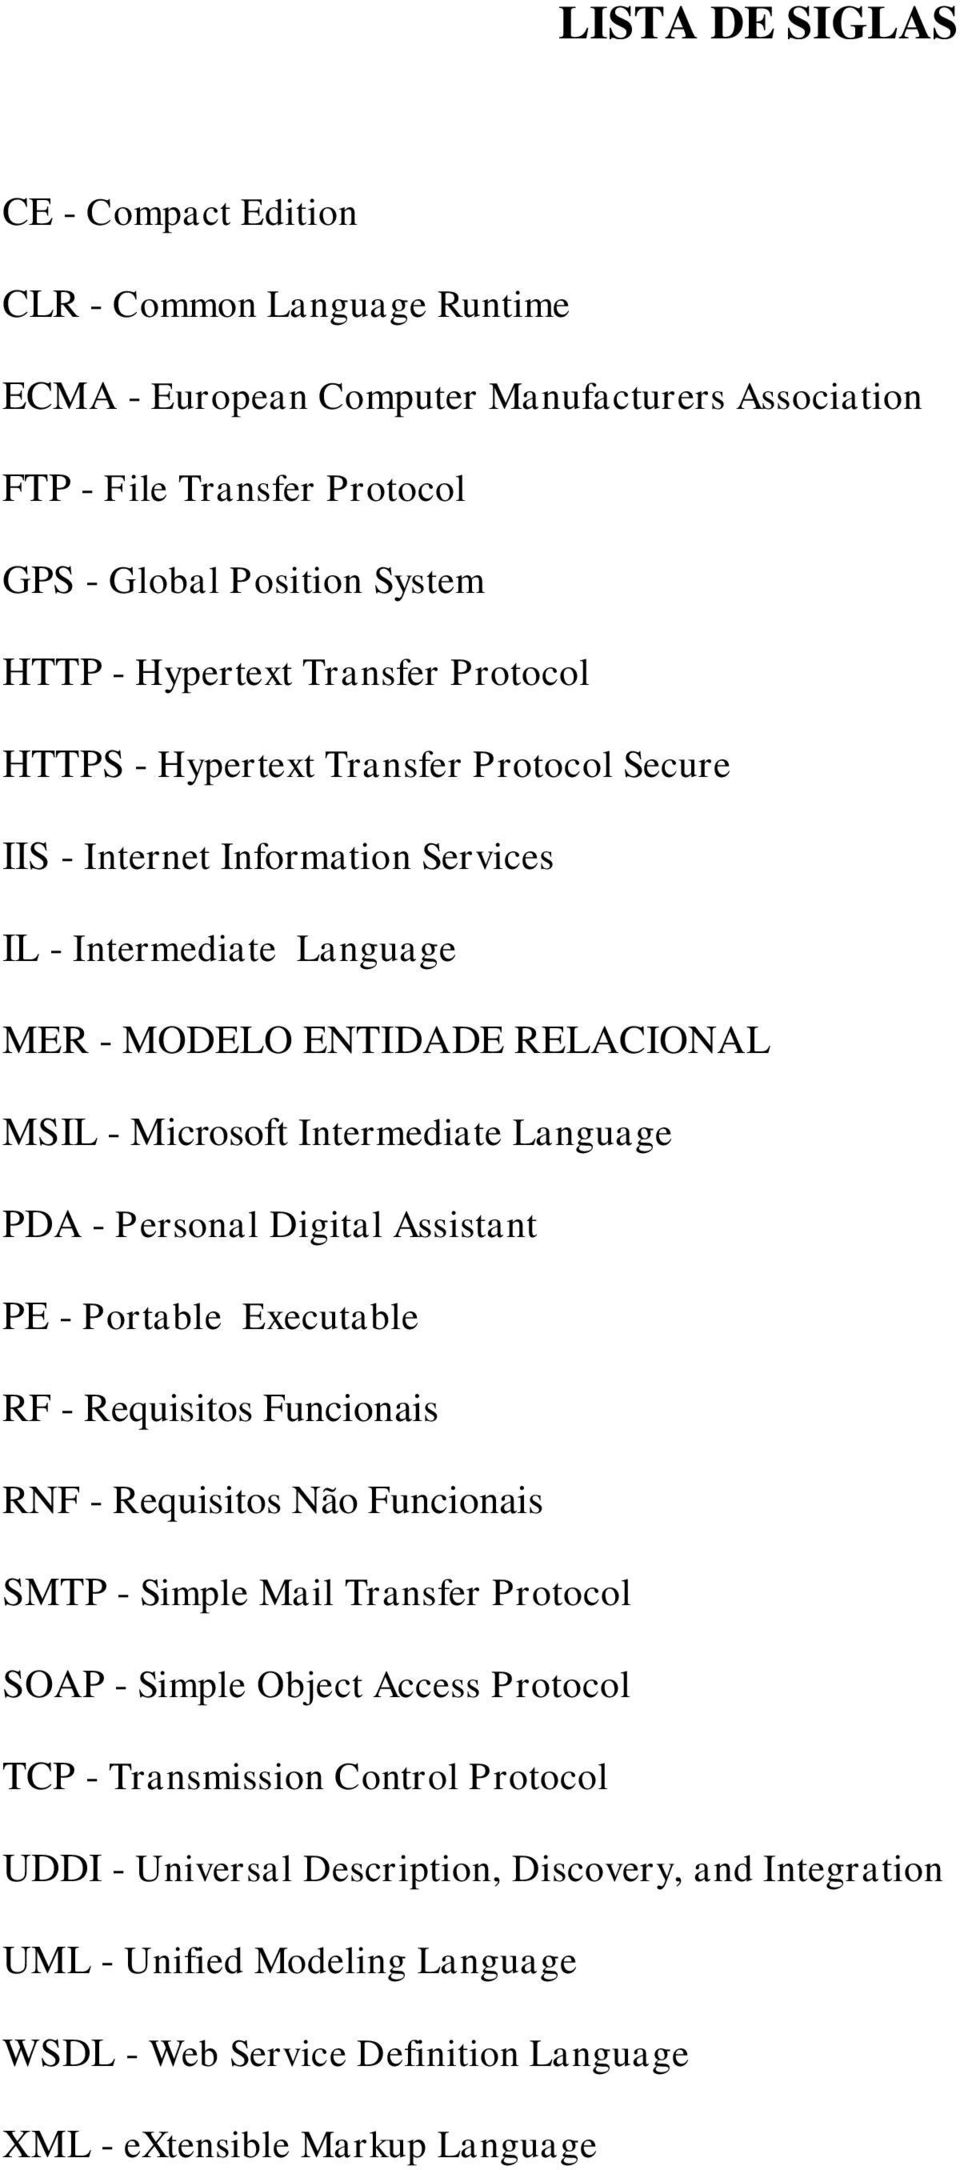 Language PDA - Personal Digital Assistant PE - Portable Executable RF - Requisitos Funcionais RNF - Requisitos Não Funcionais SMTP - Simple Mail Transfer Protocol SOAP - Simple Object Access